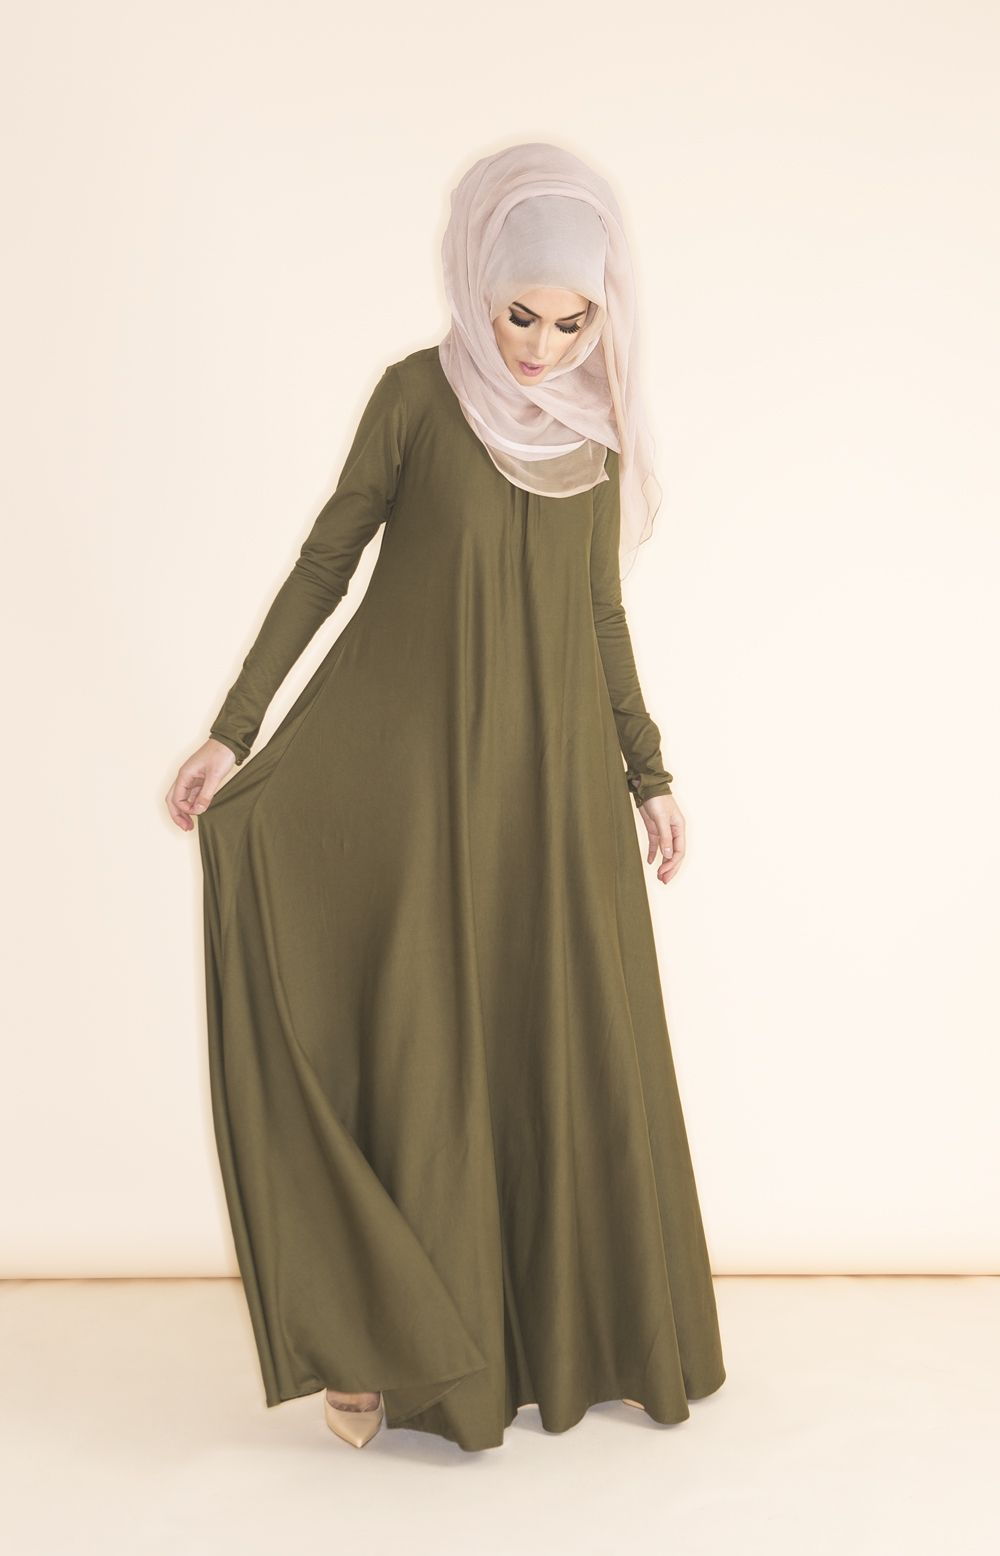 Love this cute hijab style with this long green abaya looks soo beautiful and amazing my favourite love it amazing soo beautiful.